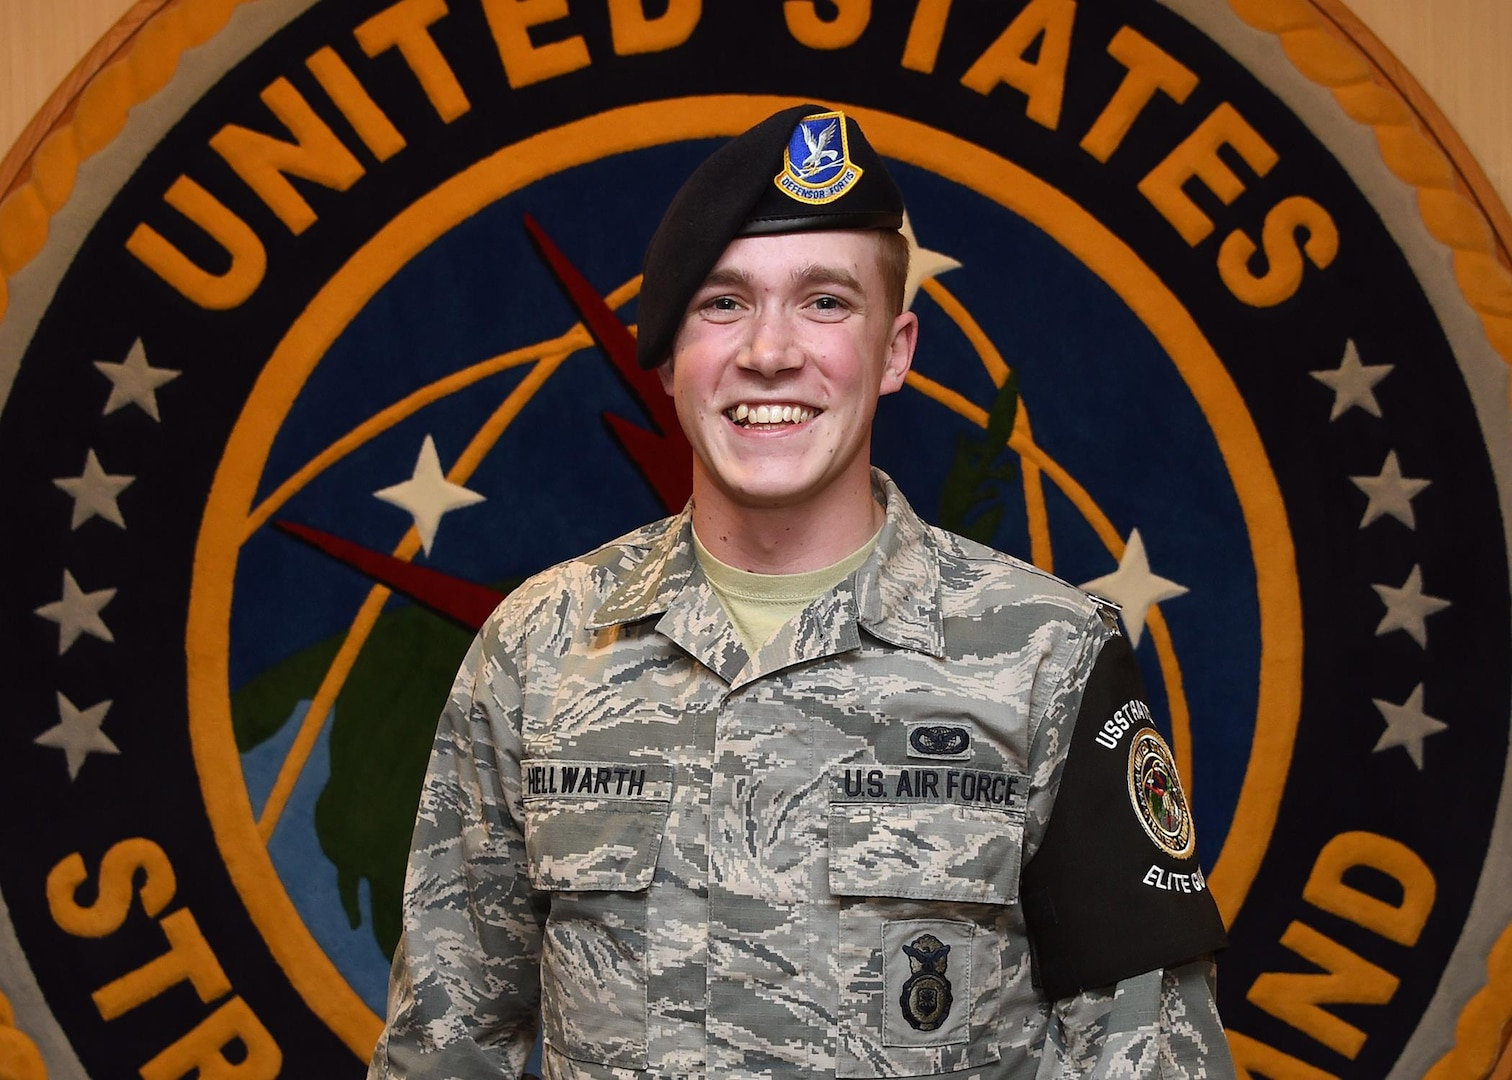 Senior Airman James C. Hellwarth